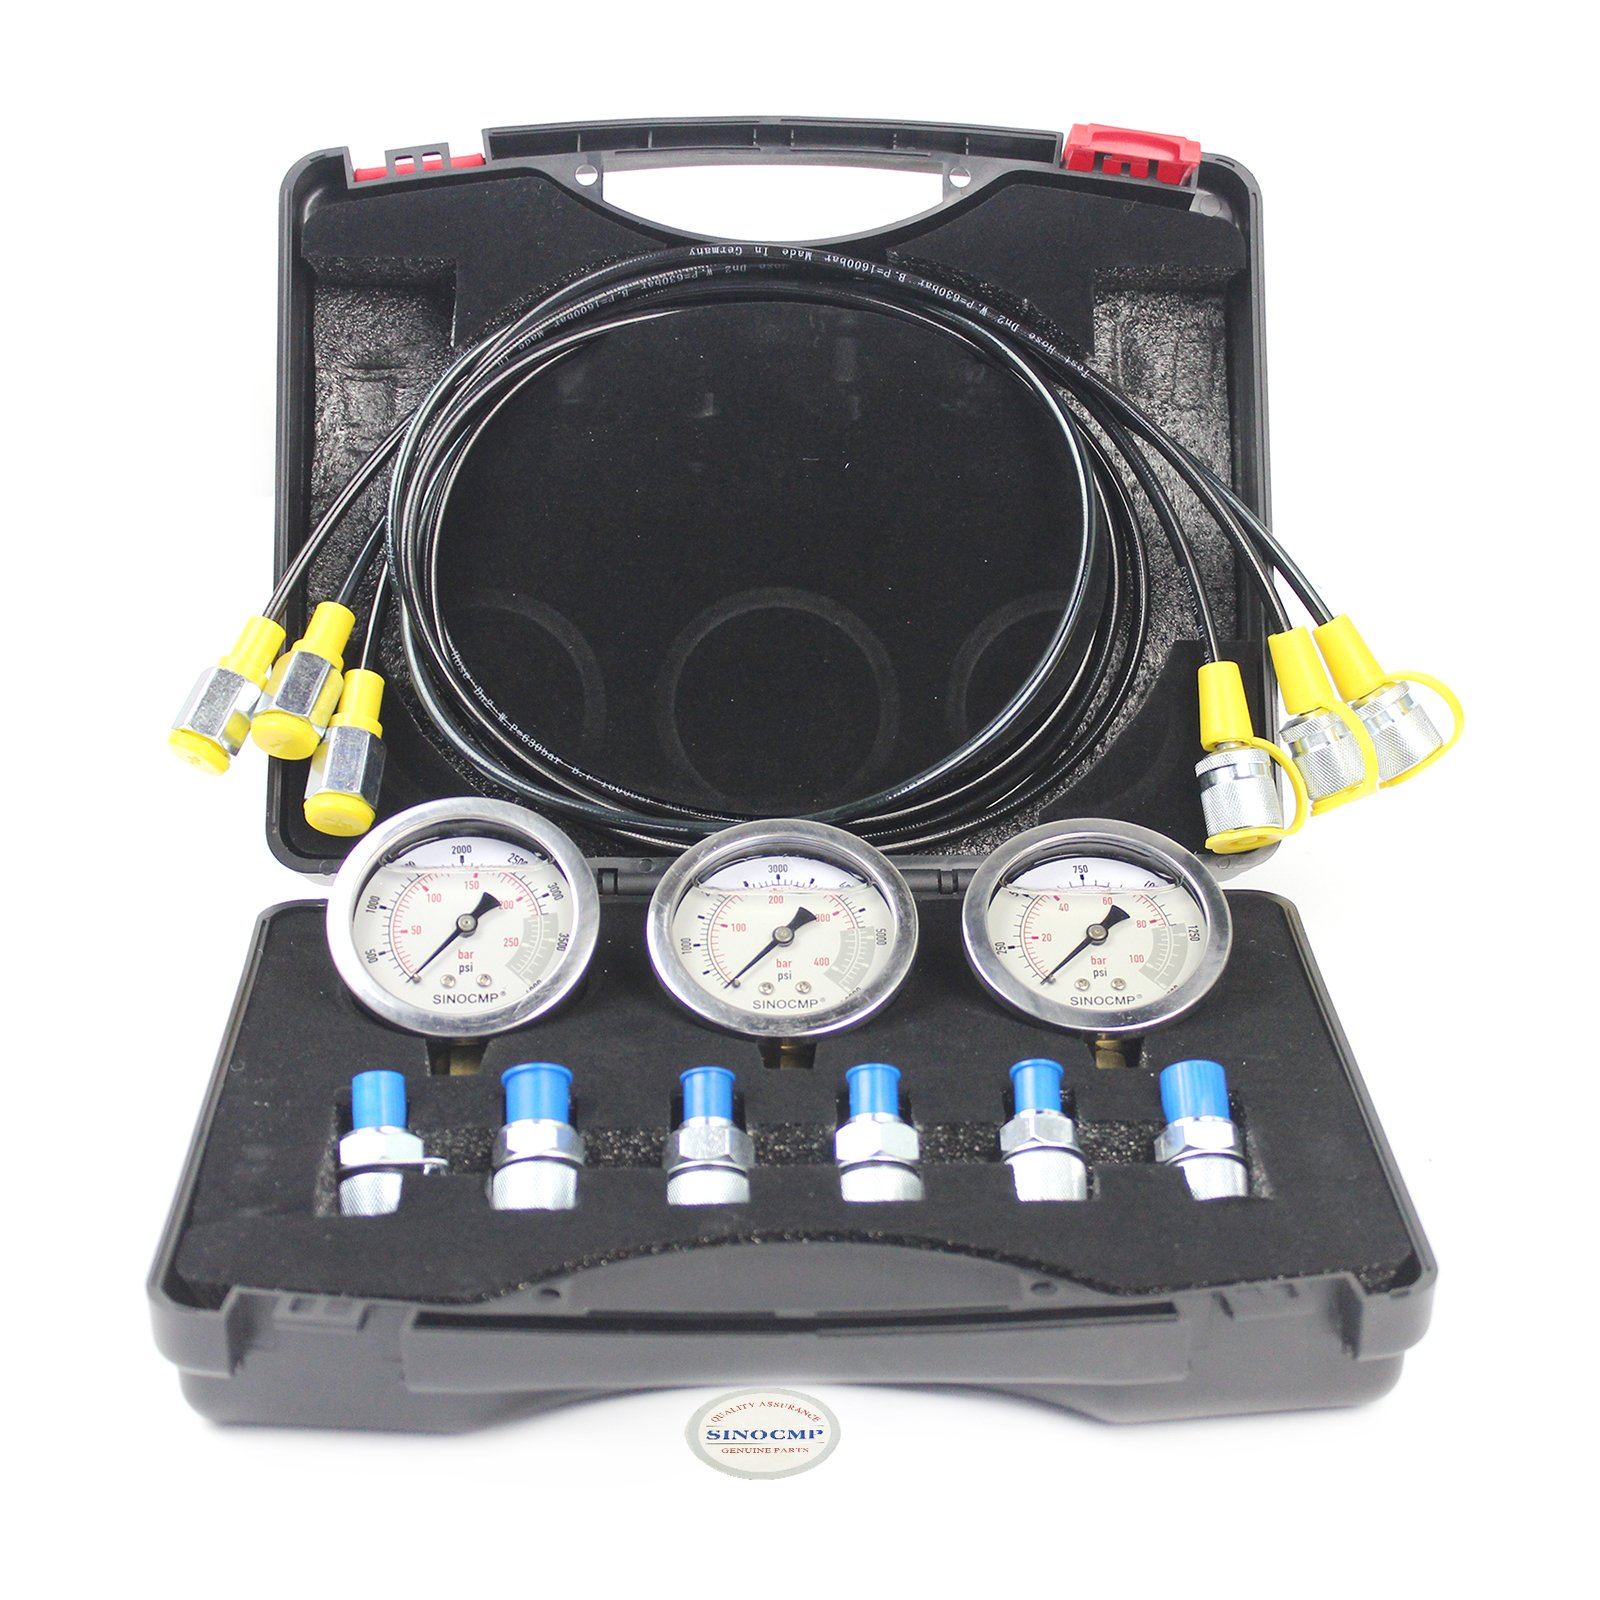 Hydraulic Pressure Test Kits - SINOCMP Hydraulic Gauge Set, 6 Couplings, 3 160cm Long Test Hoses and 3 Pressure Gauge 10/25/40 Mpa for Excavator Construction, 1.7KG, 2 Year Warranty